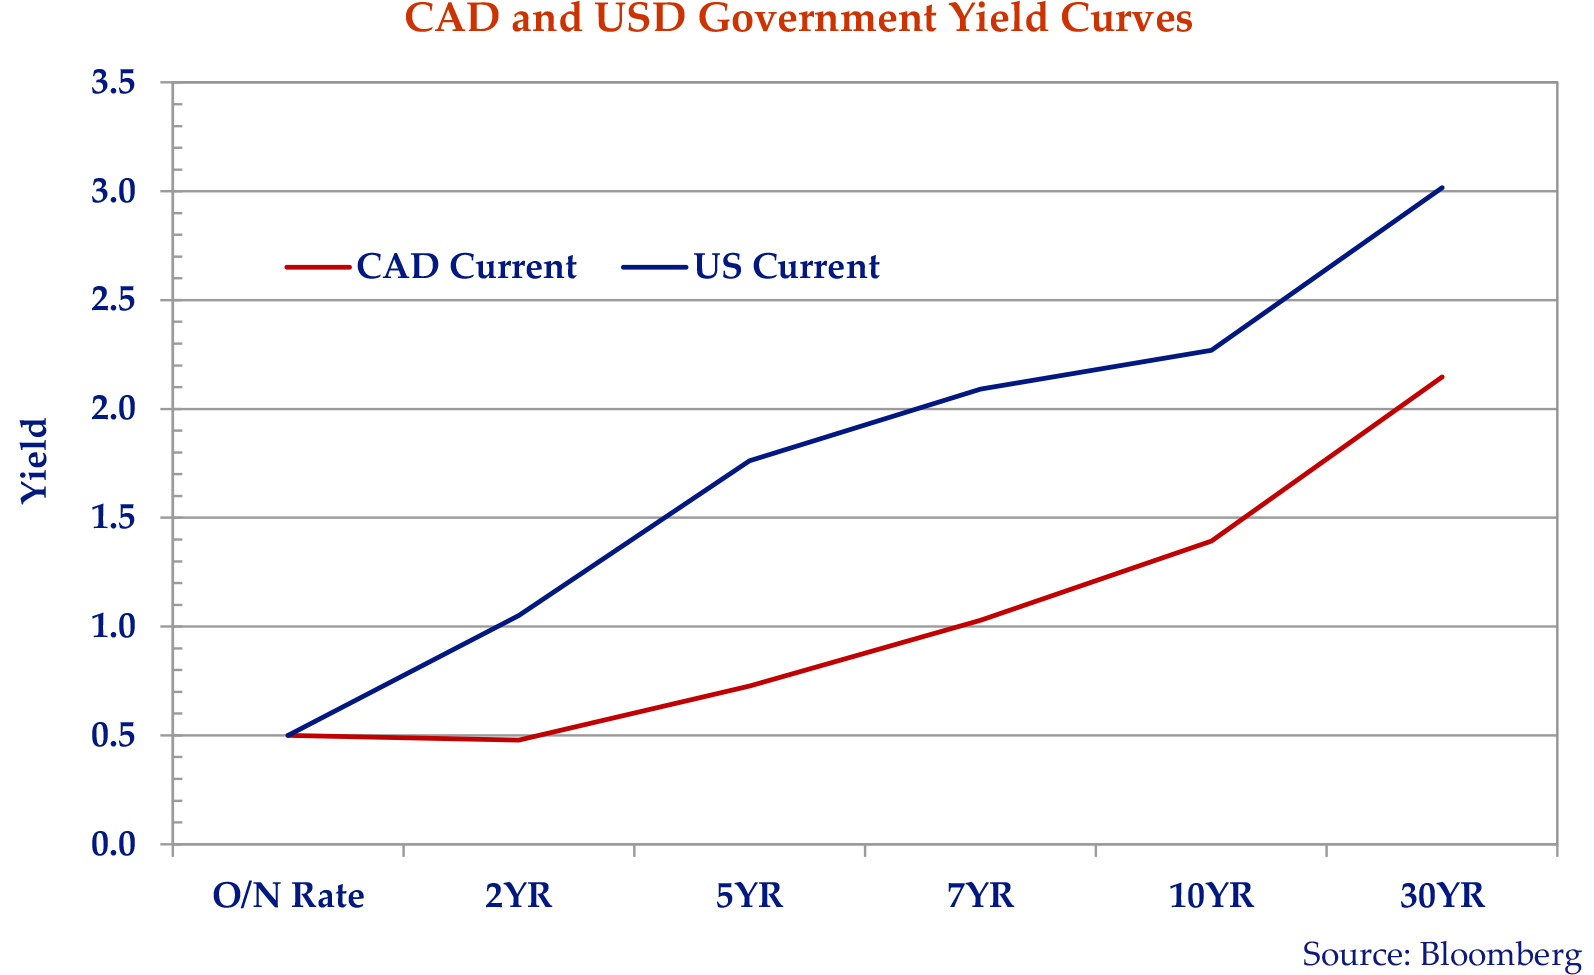 line graph showing the current Canadian and unites states government yield curves.